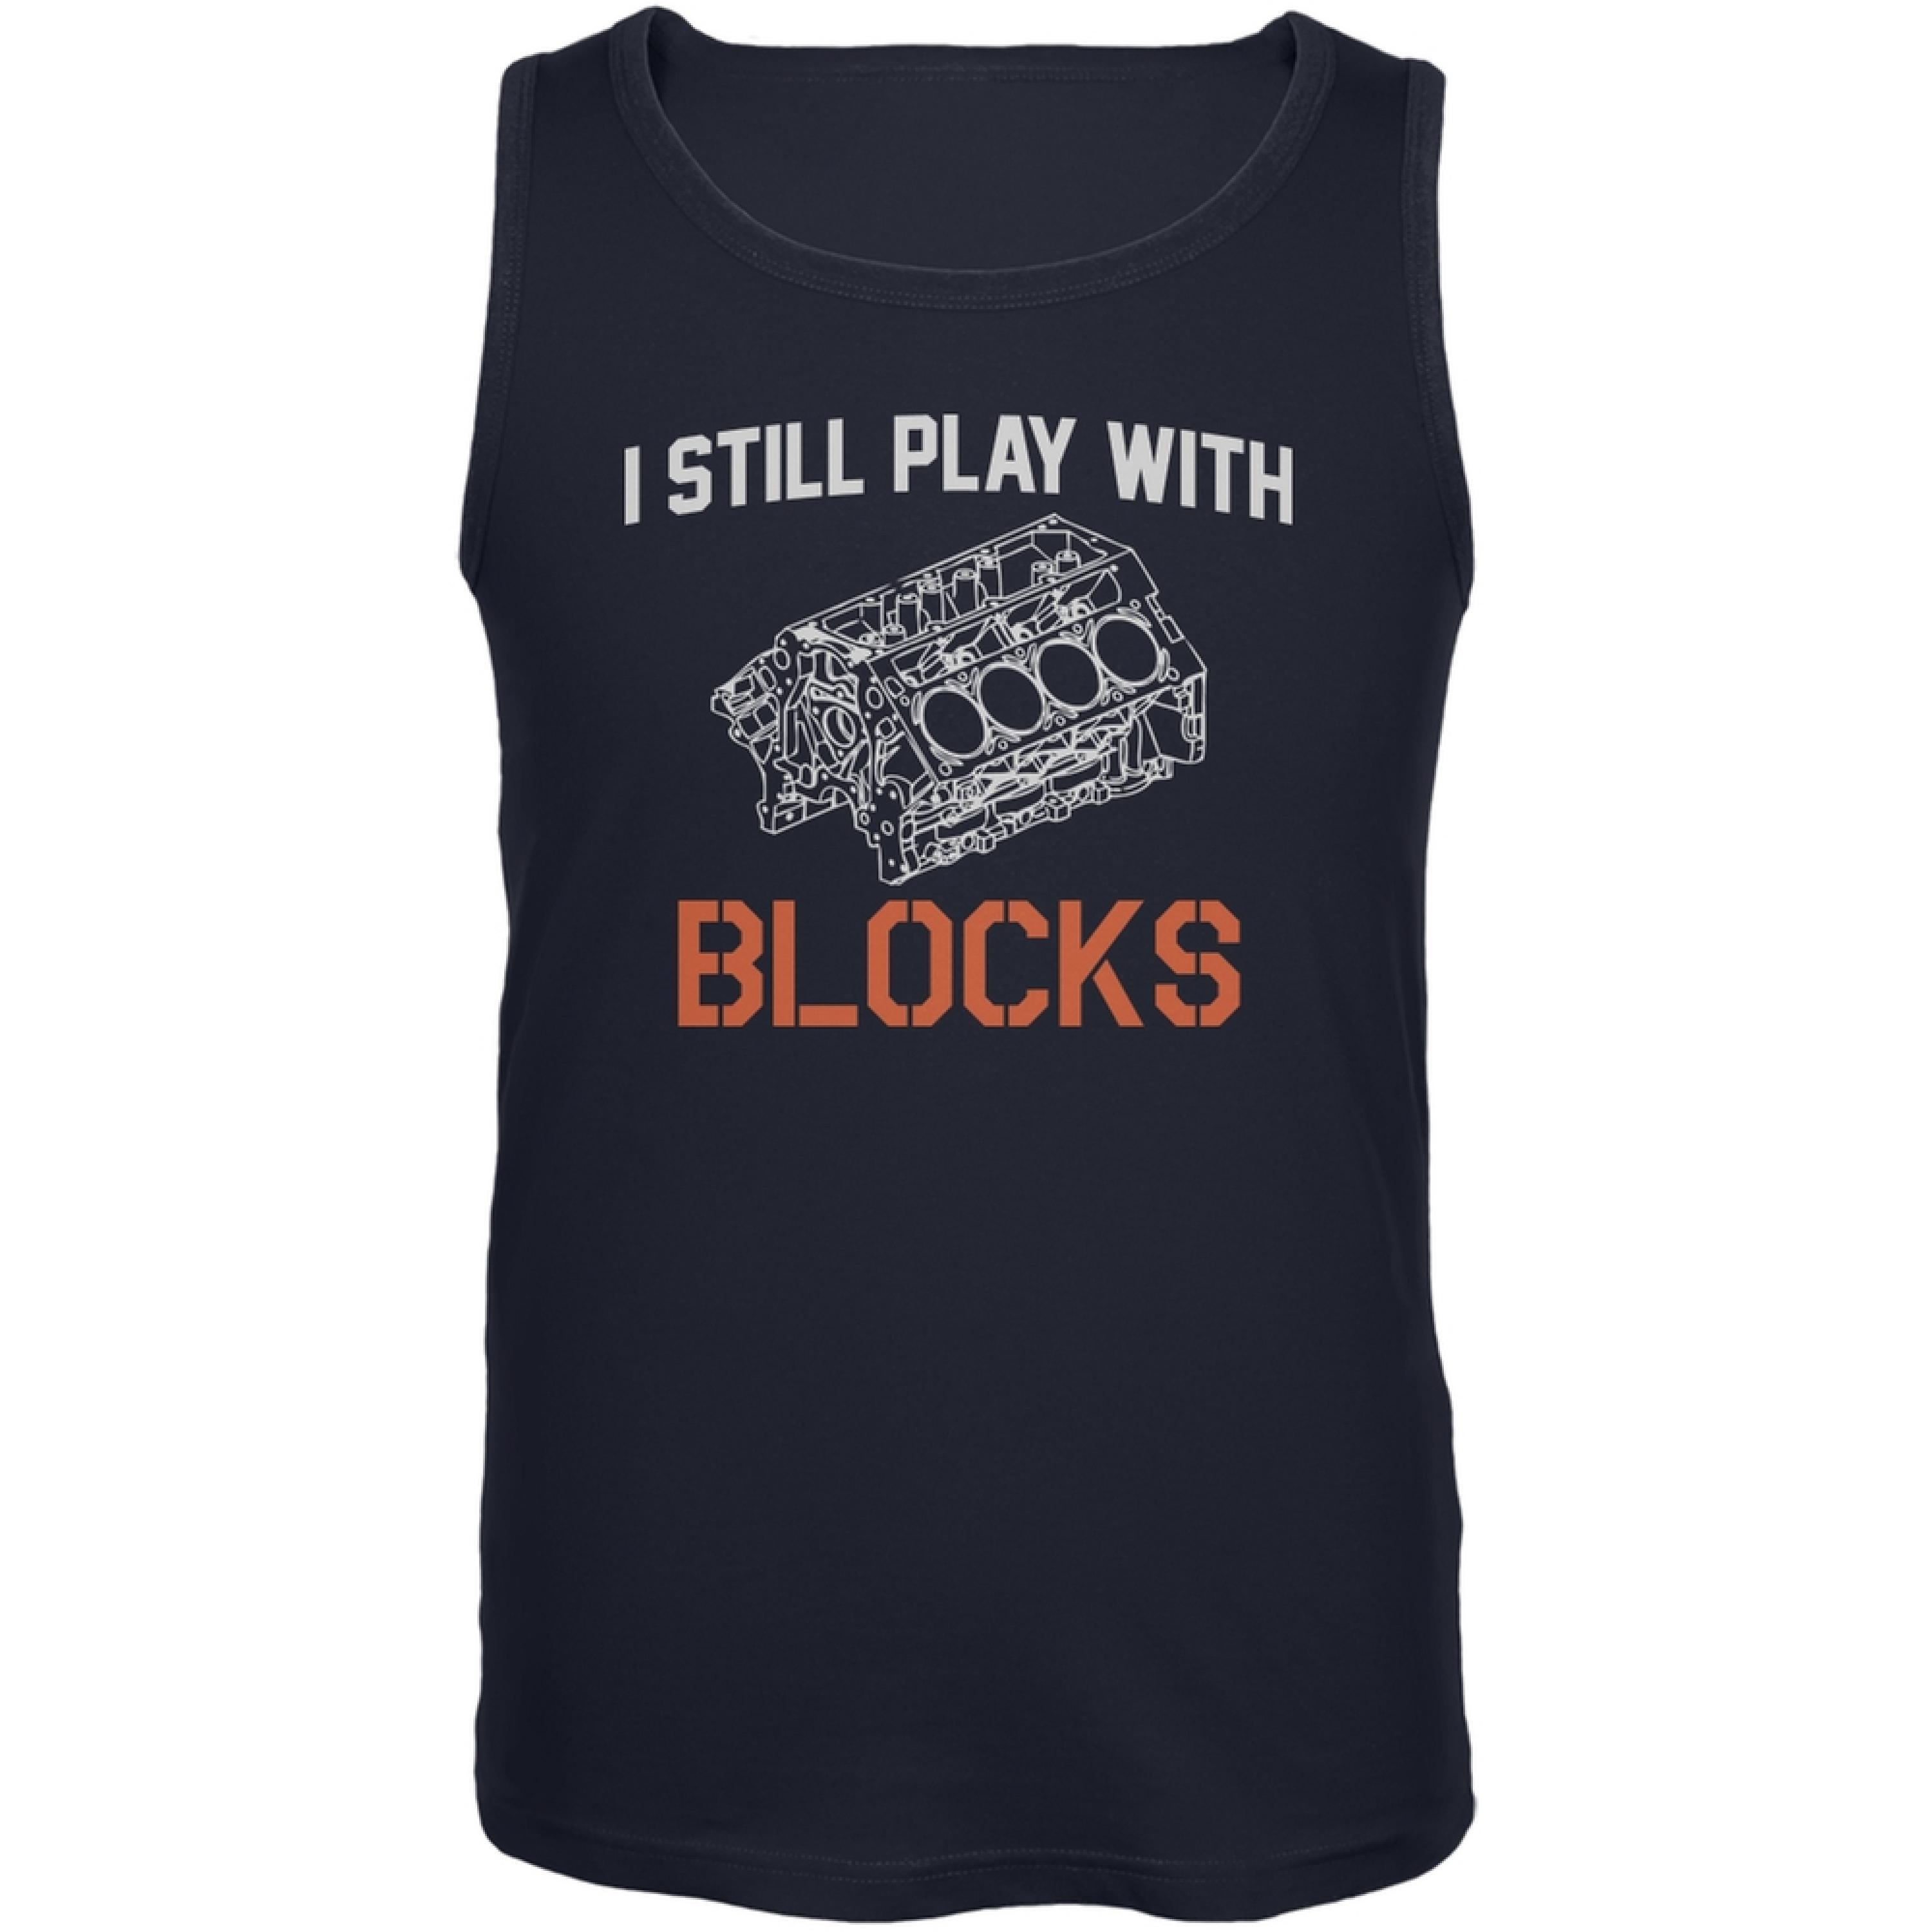 Auto Racing I Still Play With Blocks Navy Adult Tank Top by